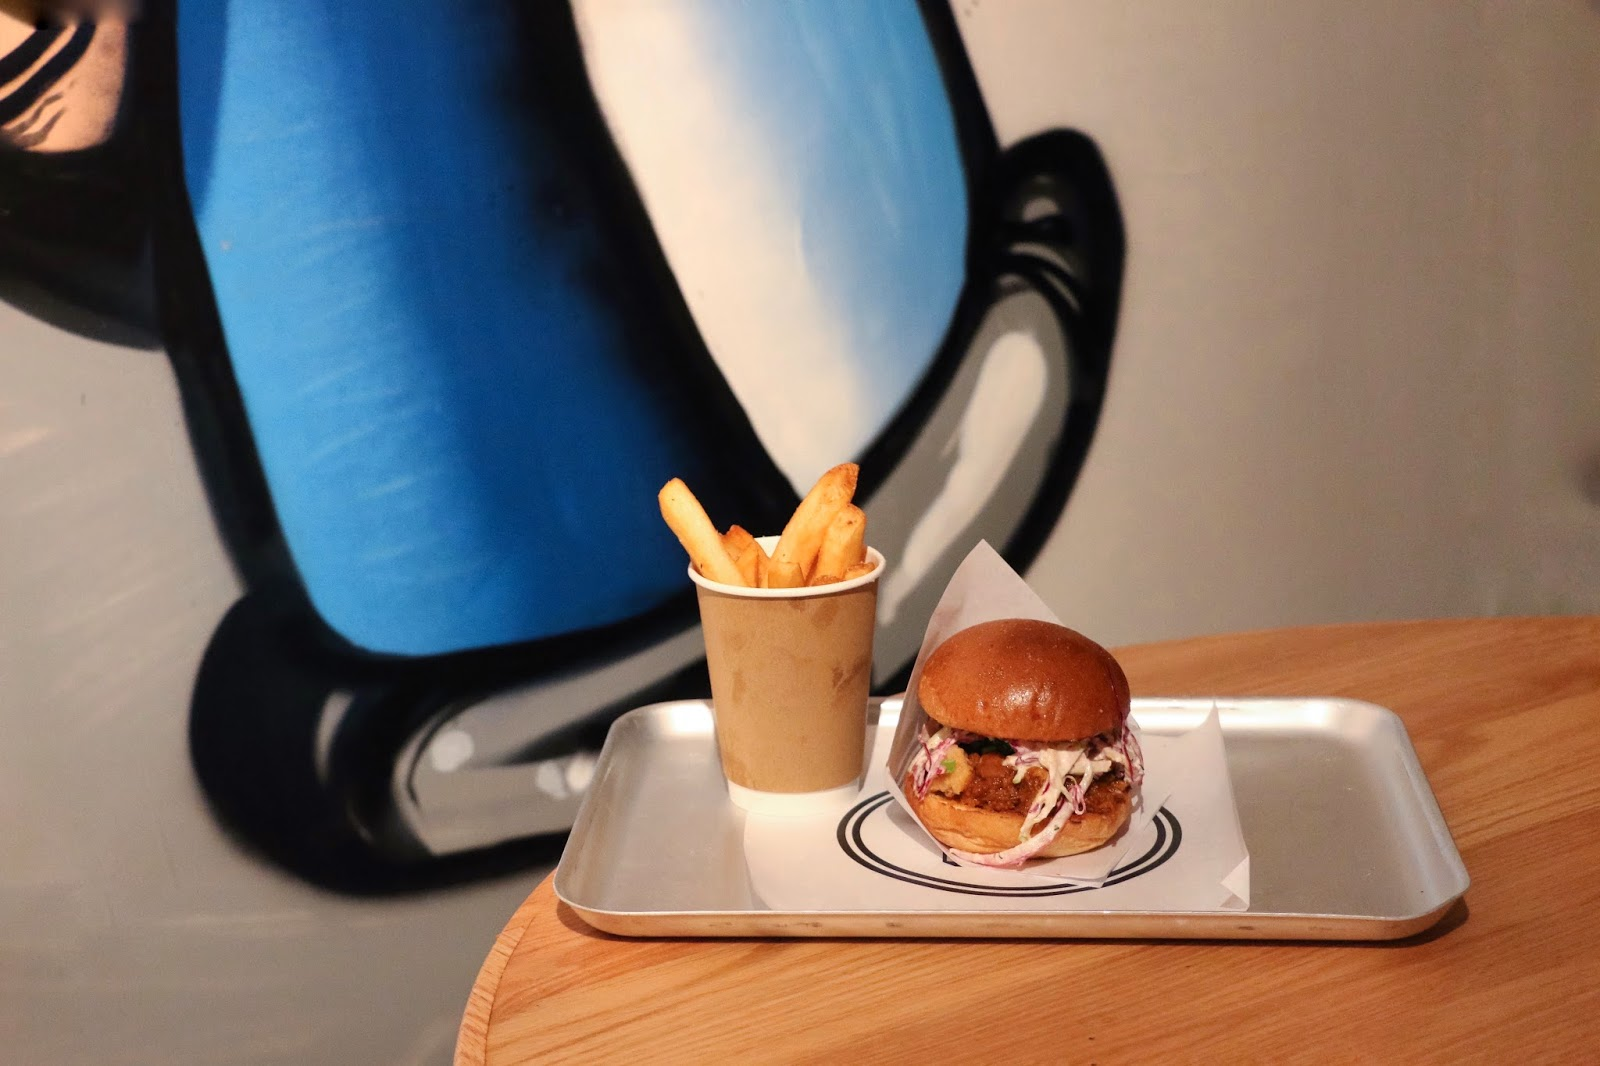 Beef & Liberty PMQ Pop-up, Notorious P.I.G. burger, liberty fries